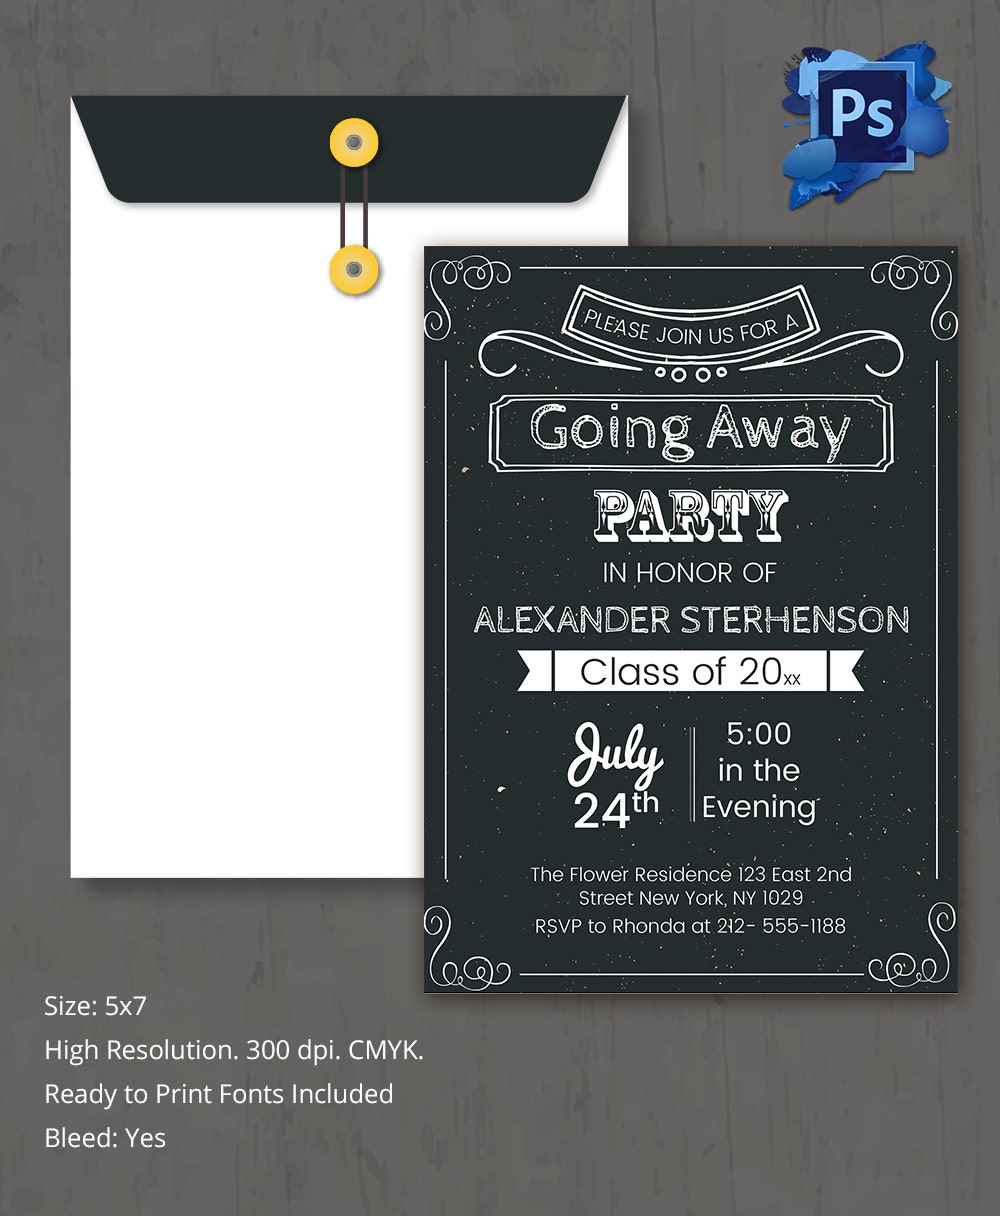 template farewell party invitation wedding invitation sample office farewell party ideas and work place going away